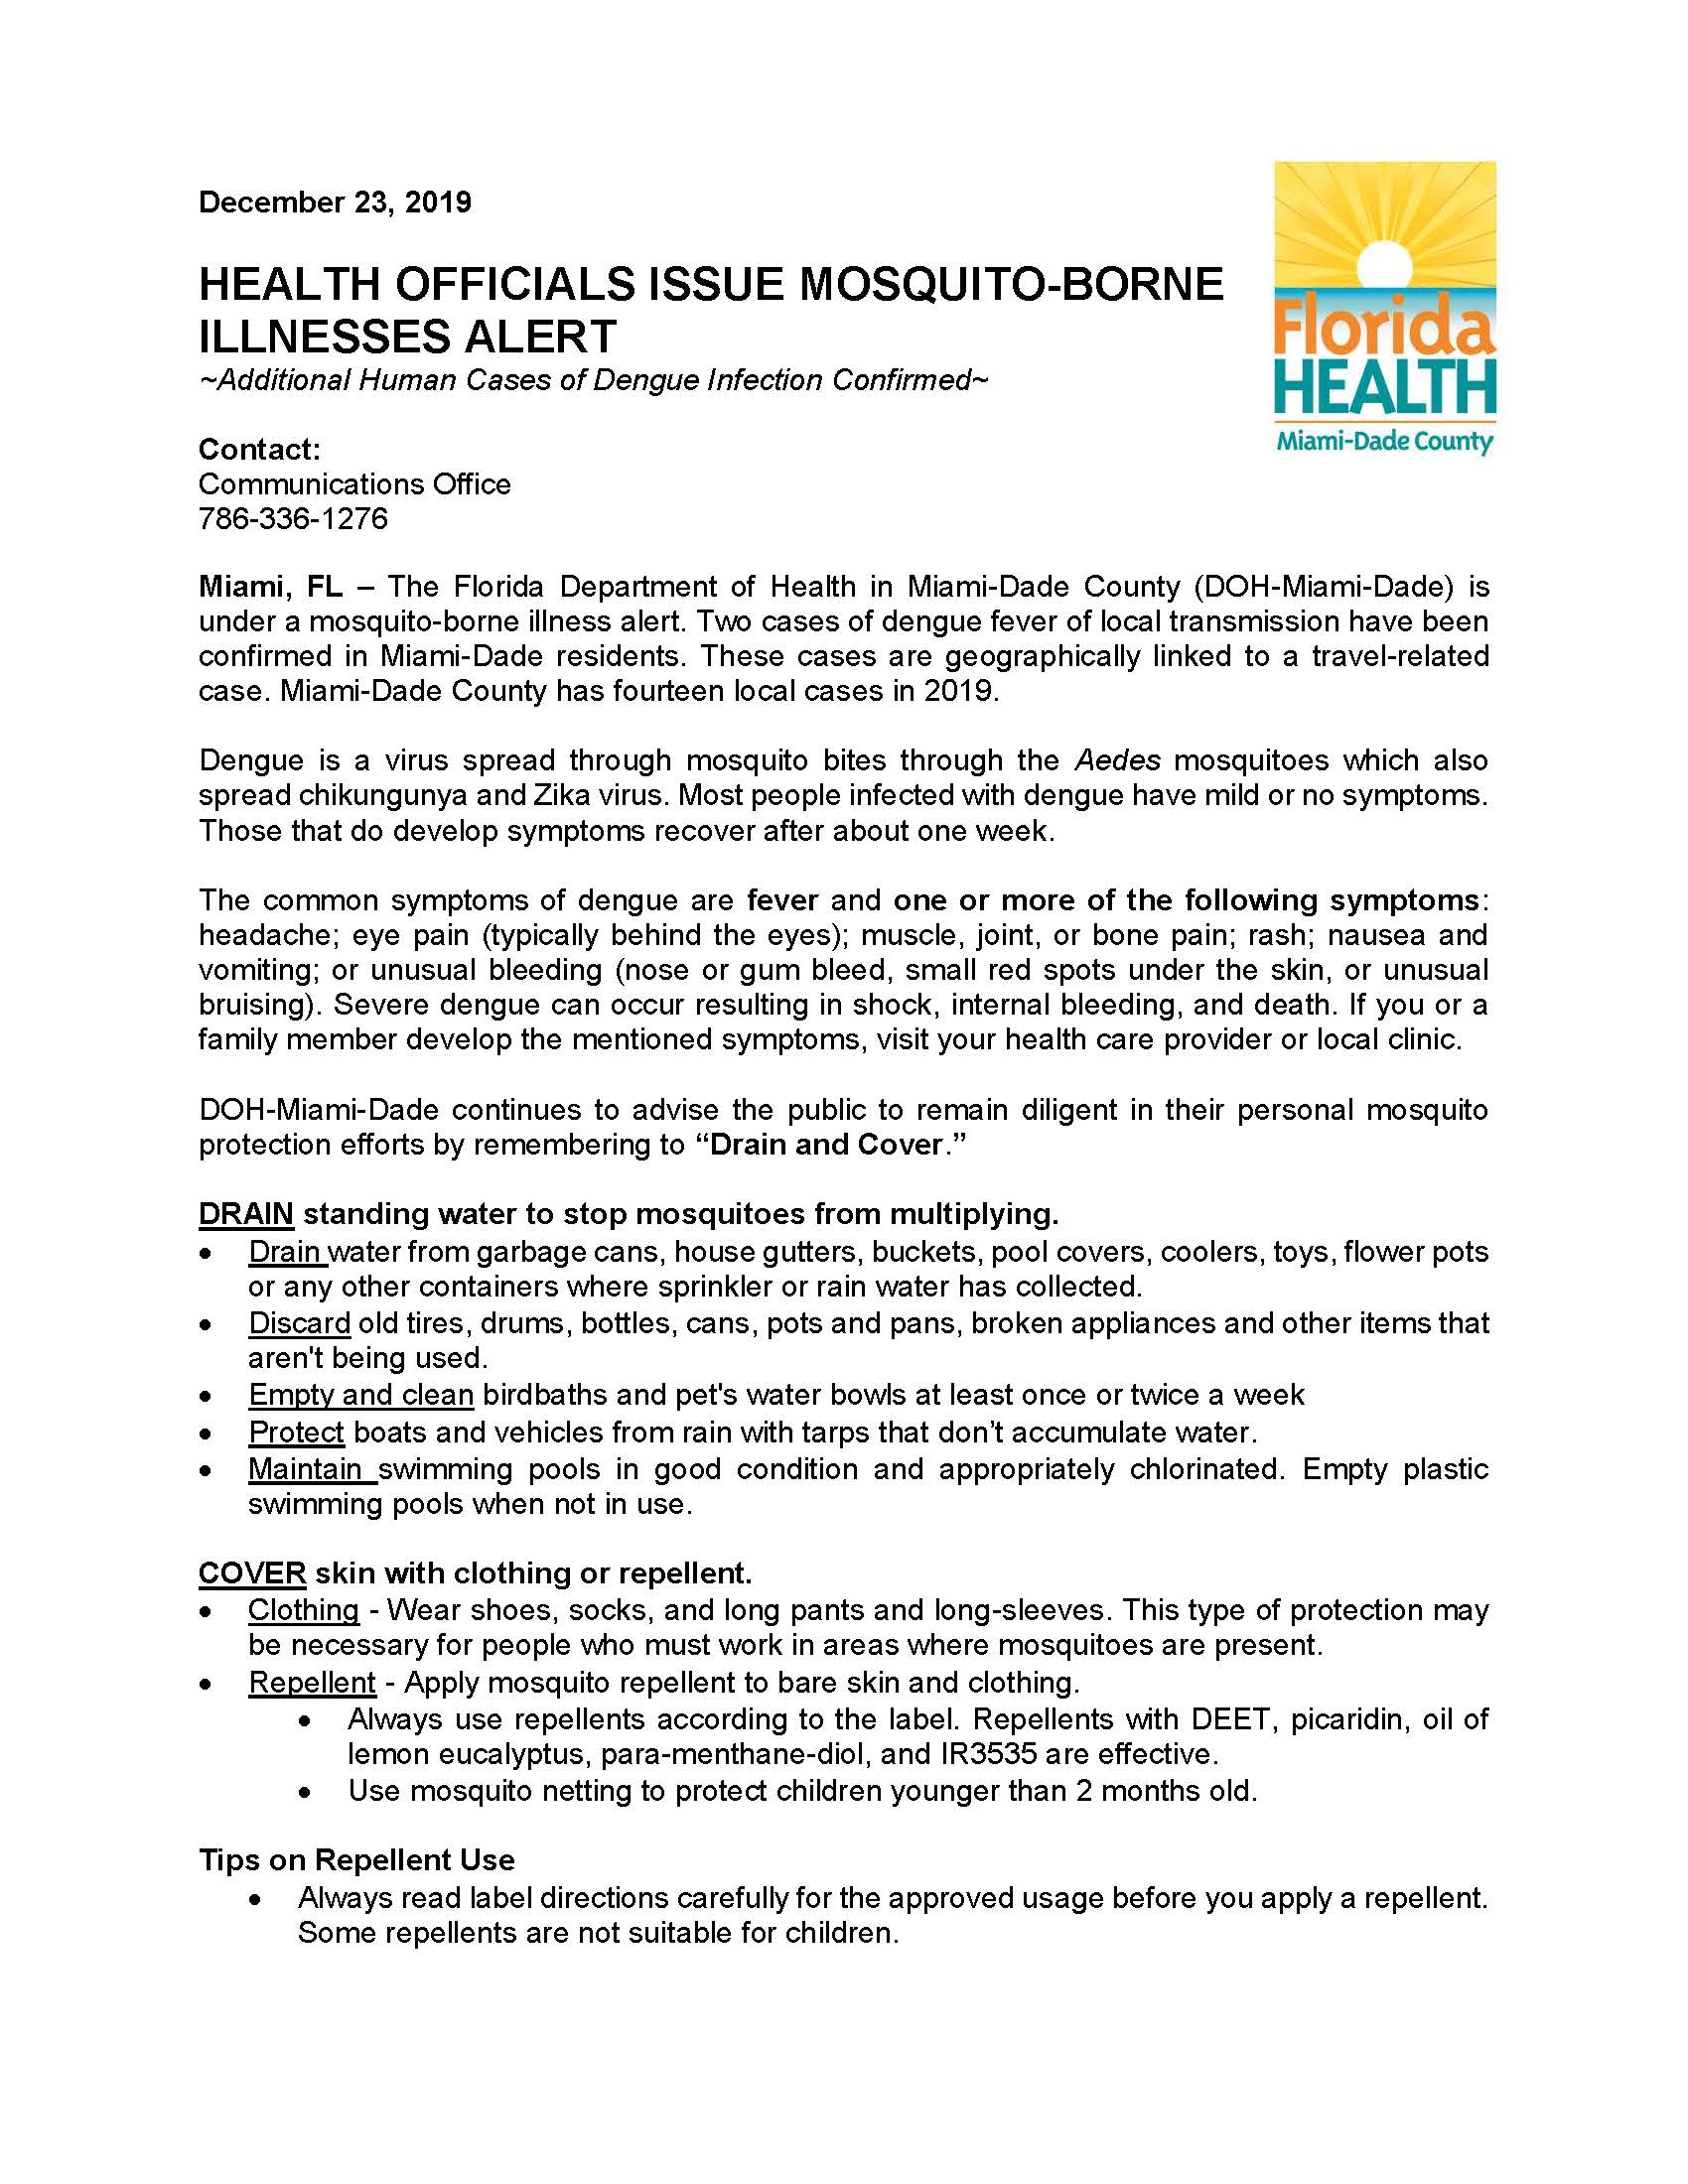 Health Officials Issue Mosquito-Borne Illnesses Alert 12-23-2019_Page_1